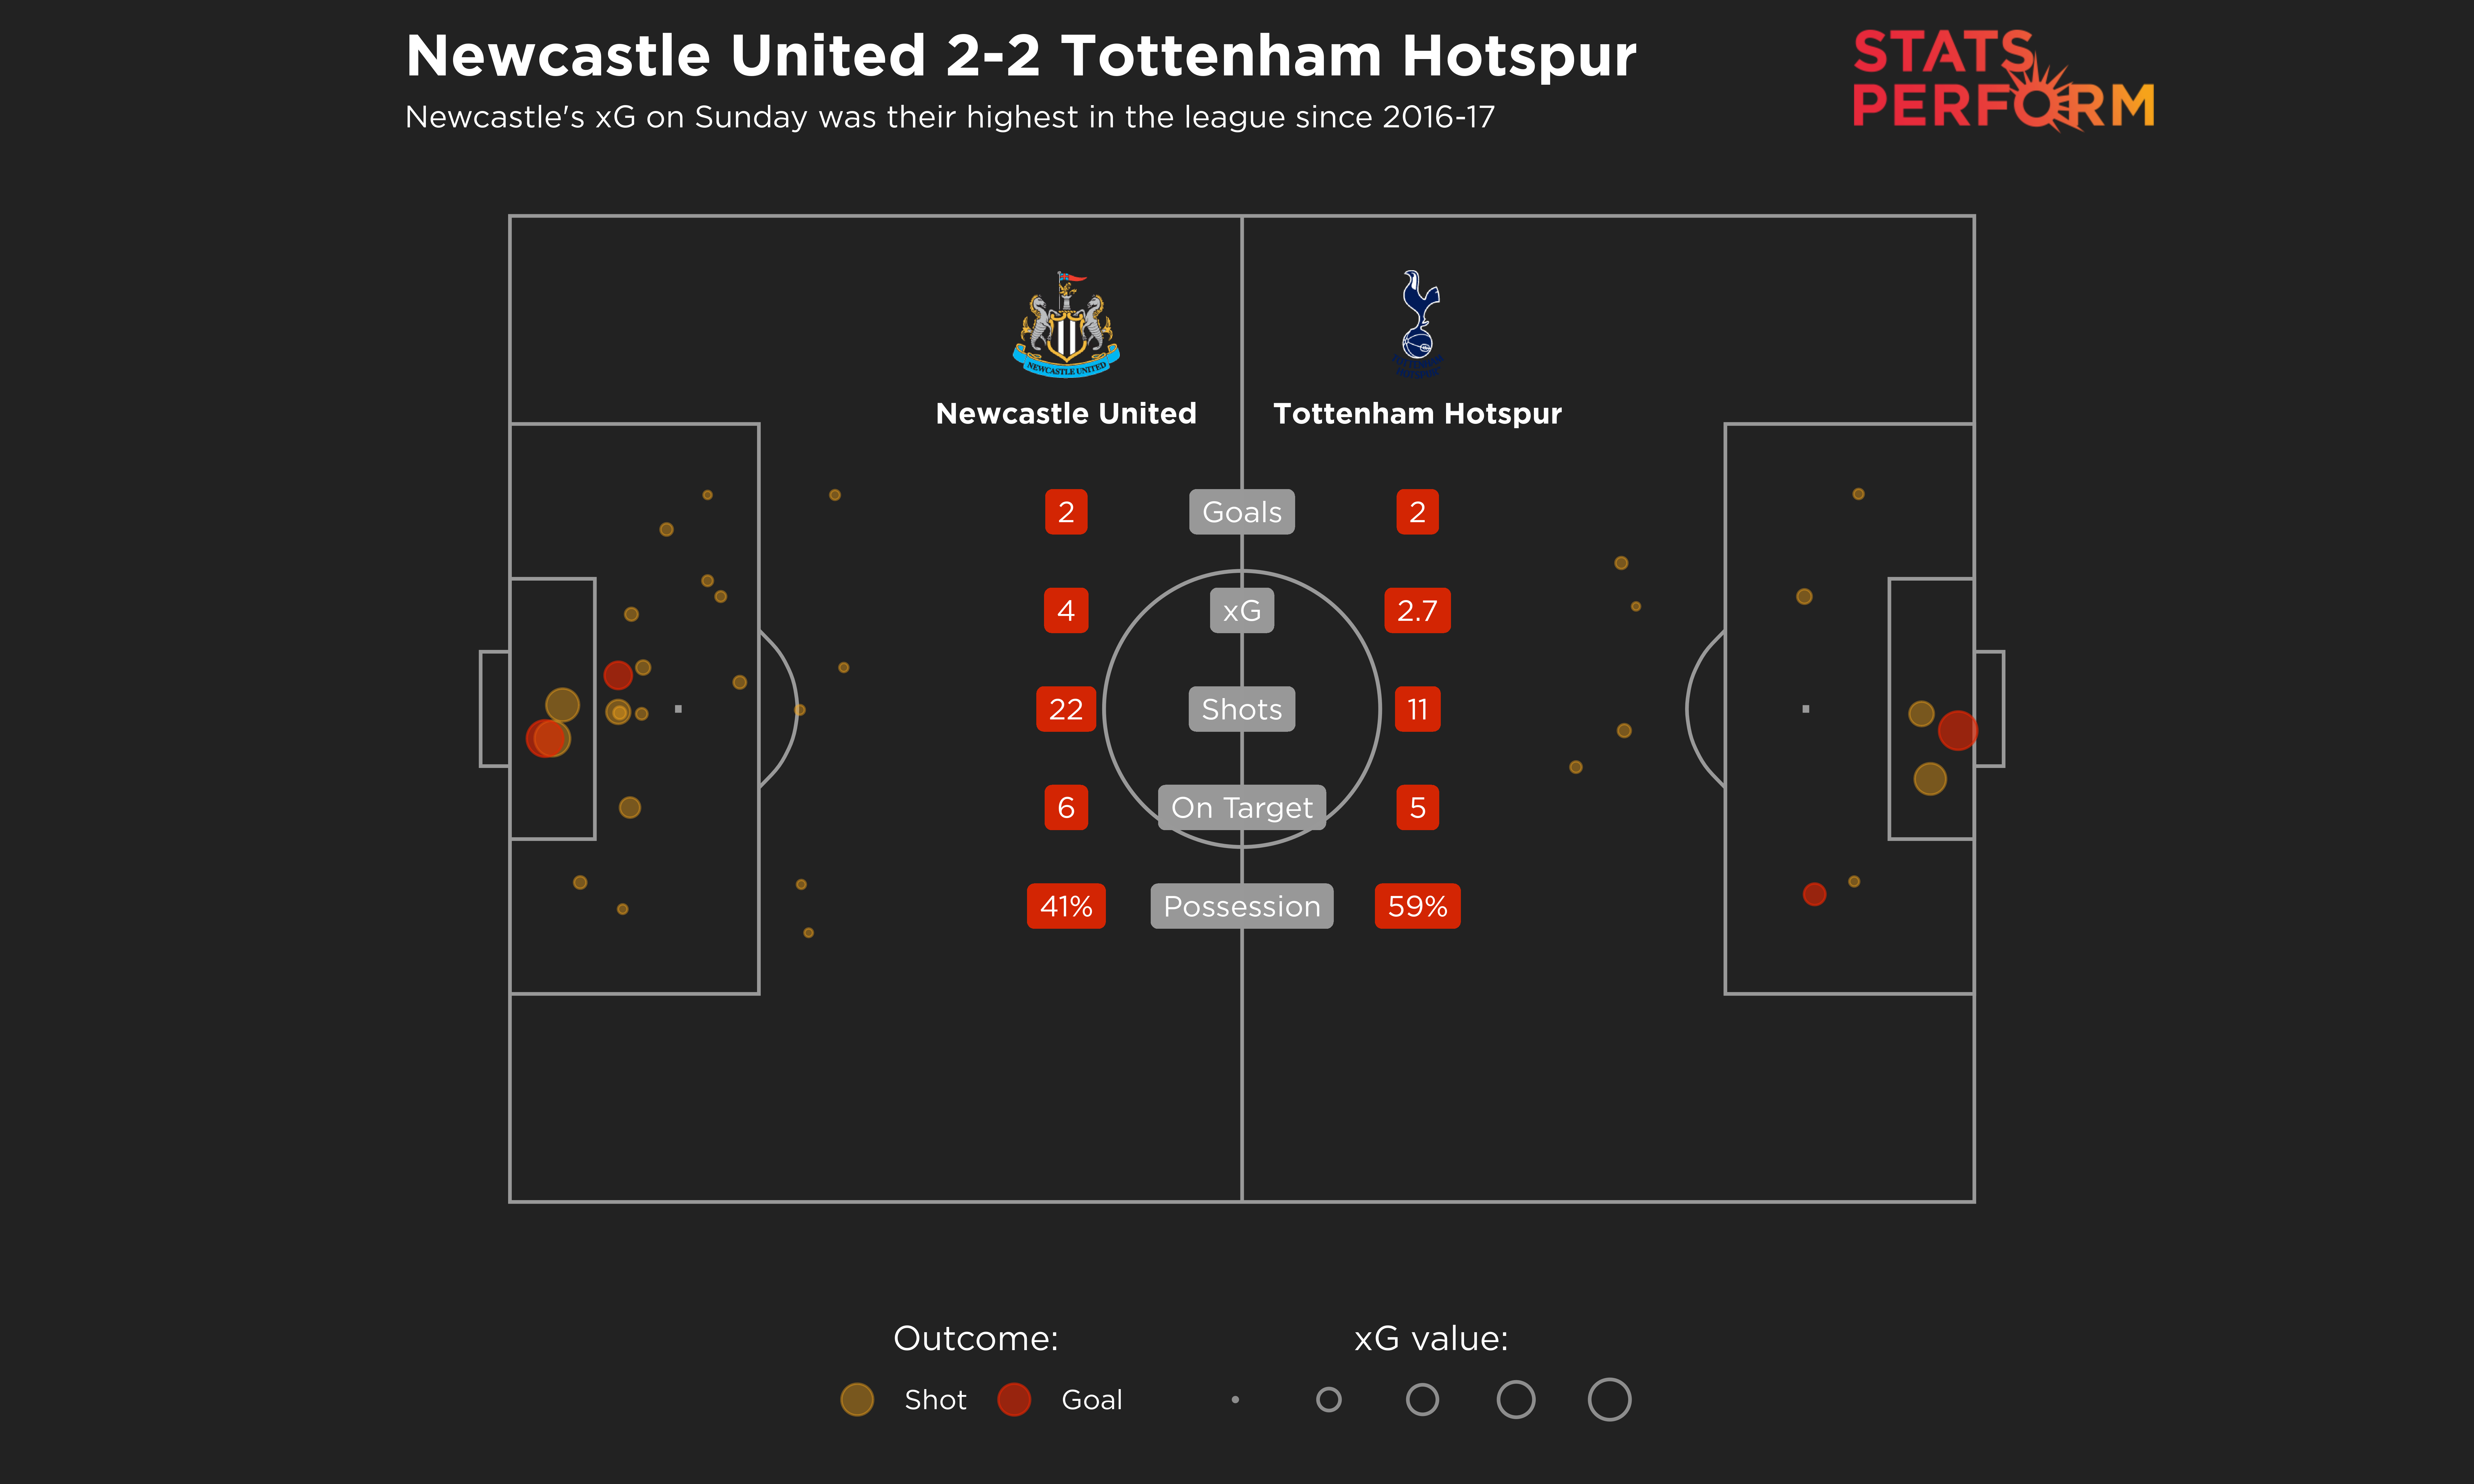 Newcastle United's xG of four against Tottenham was their highest since 2016-17